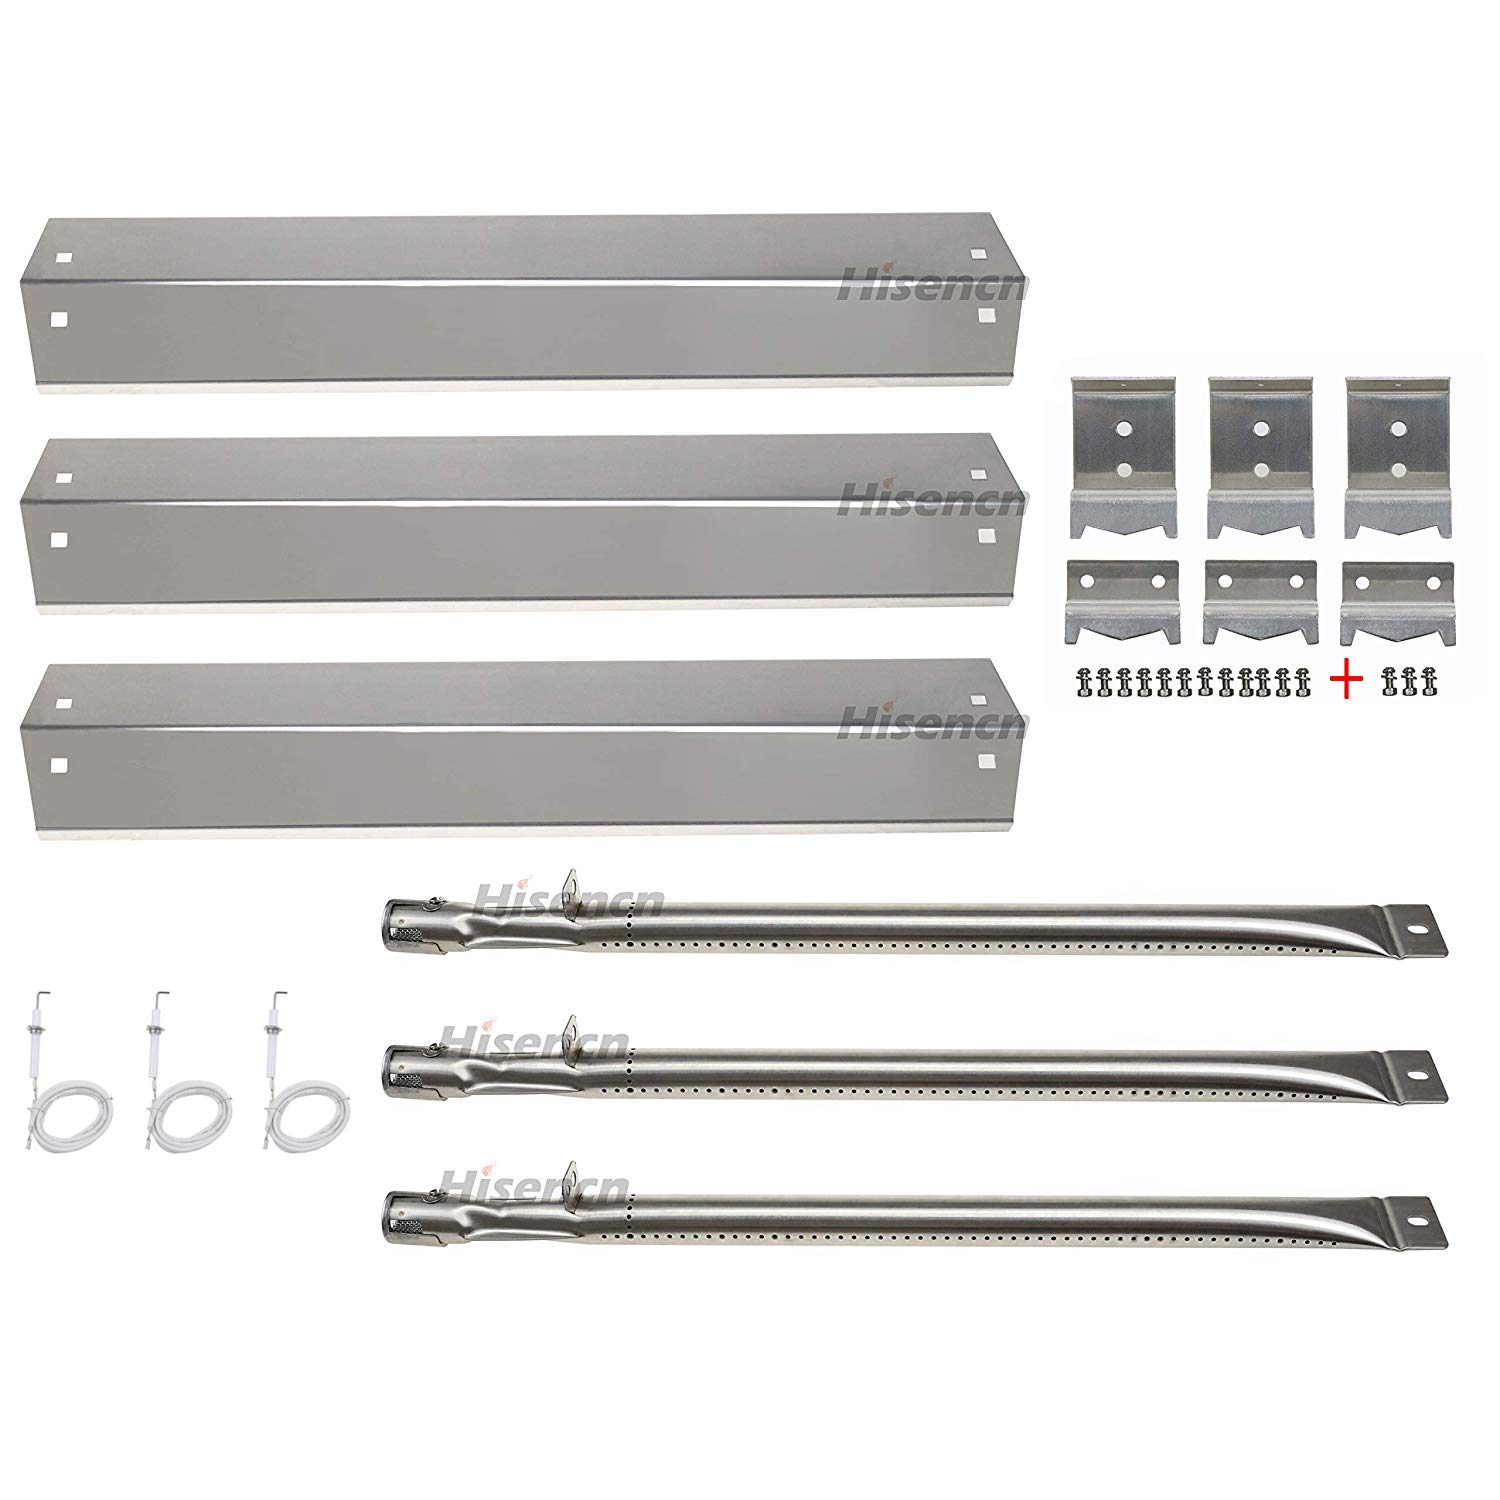 Hisencn Repair kit Parts Stainless Grill Burner Tube, Heat Plate Shield Tent, Hanger Brackets, Electronic Ignitor Replacement for Chargriller 3001, 3008, 3030, 4000, 5050, King Griller Gas Grill by Hisencn